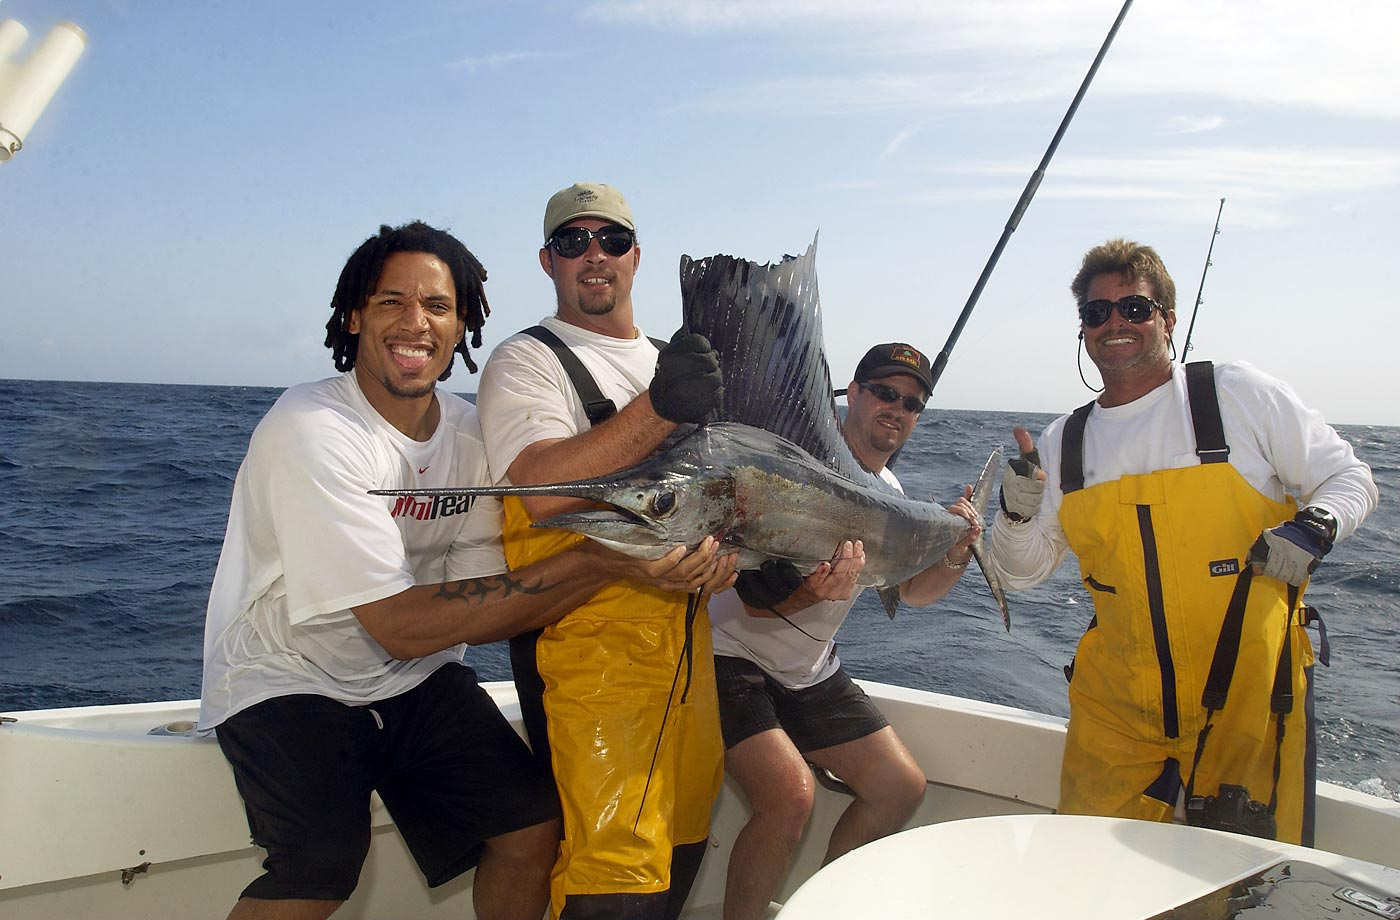 Brian Grant of the Miami Heat savors the moment after winning an hour-long fight with a sailfish off the coast of Florida.